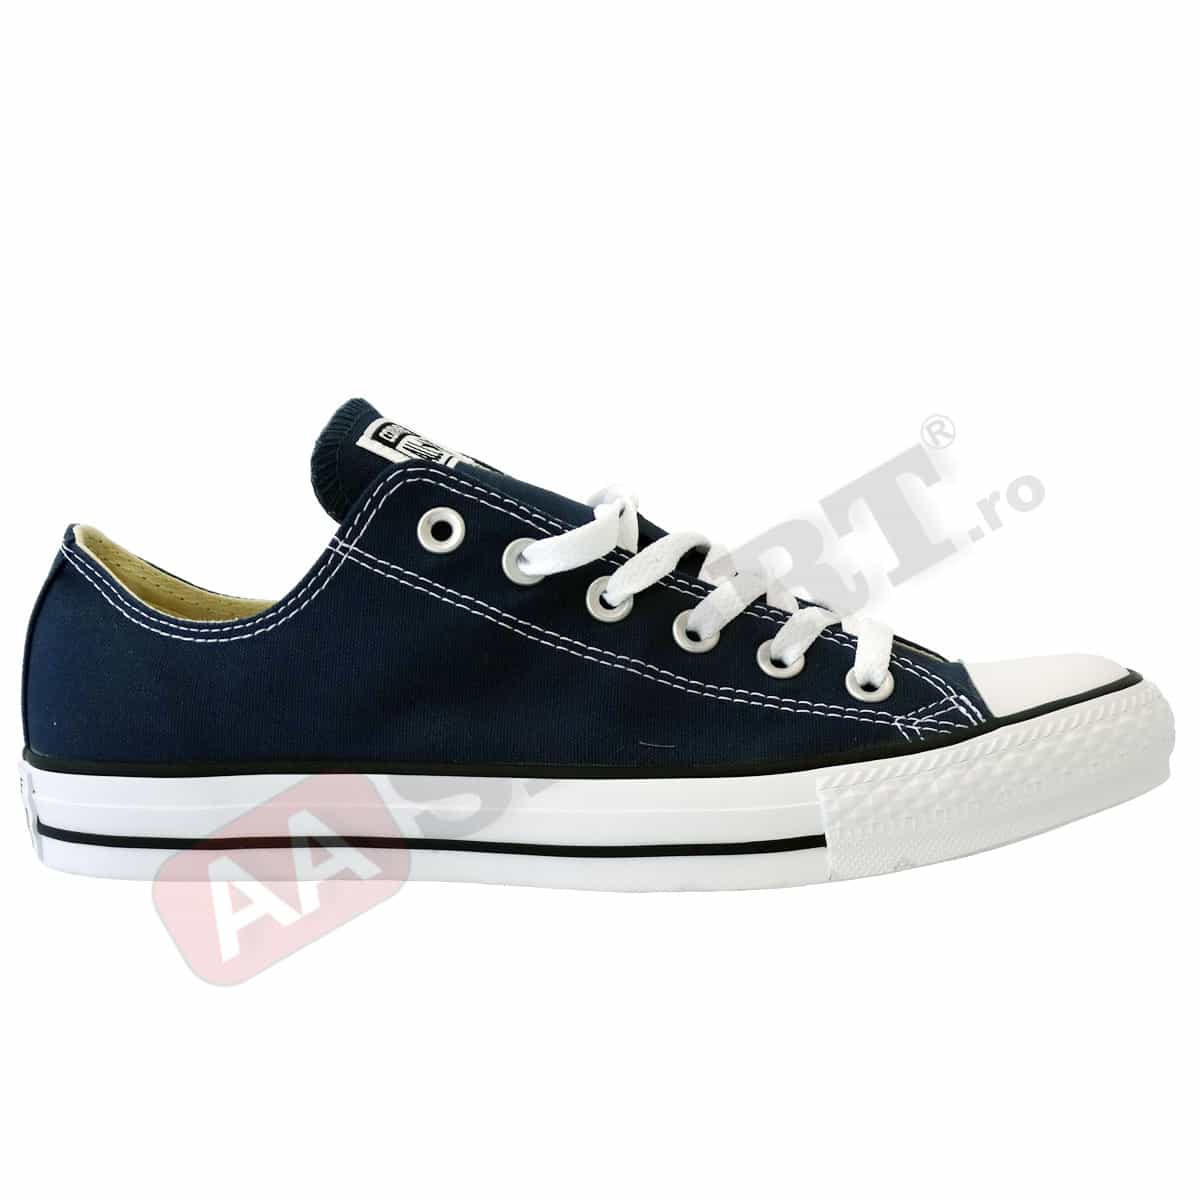 TENISI ORIGINALI CONVERSE ALL STAR OX - M9697C